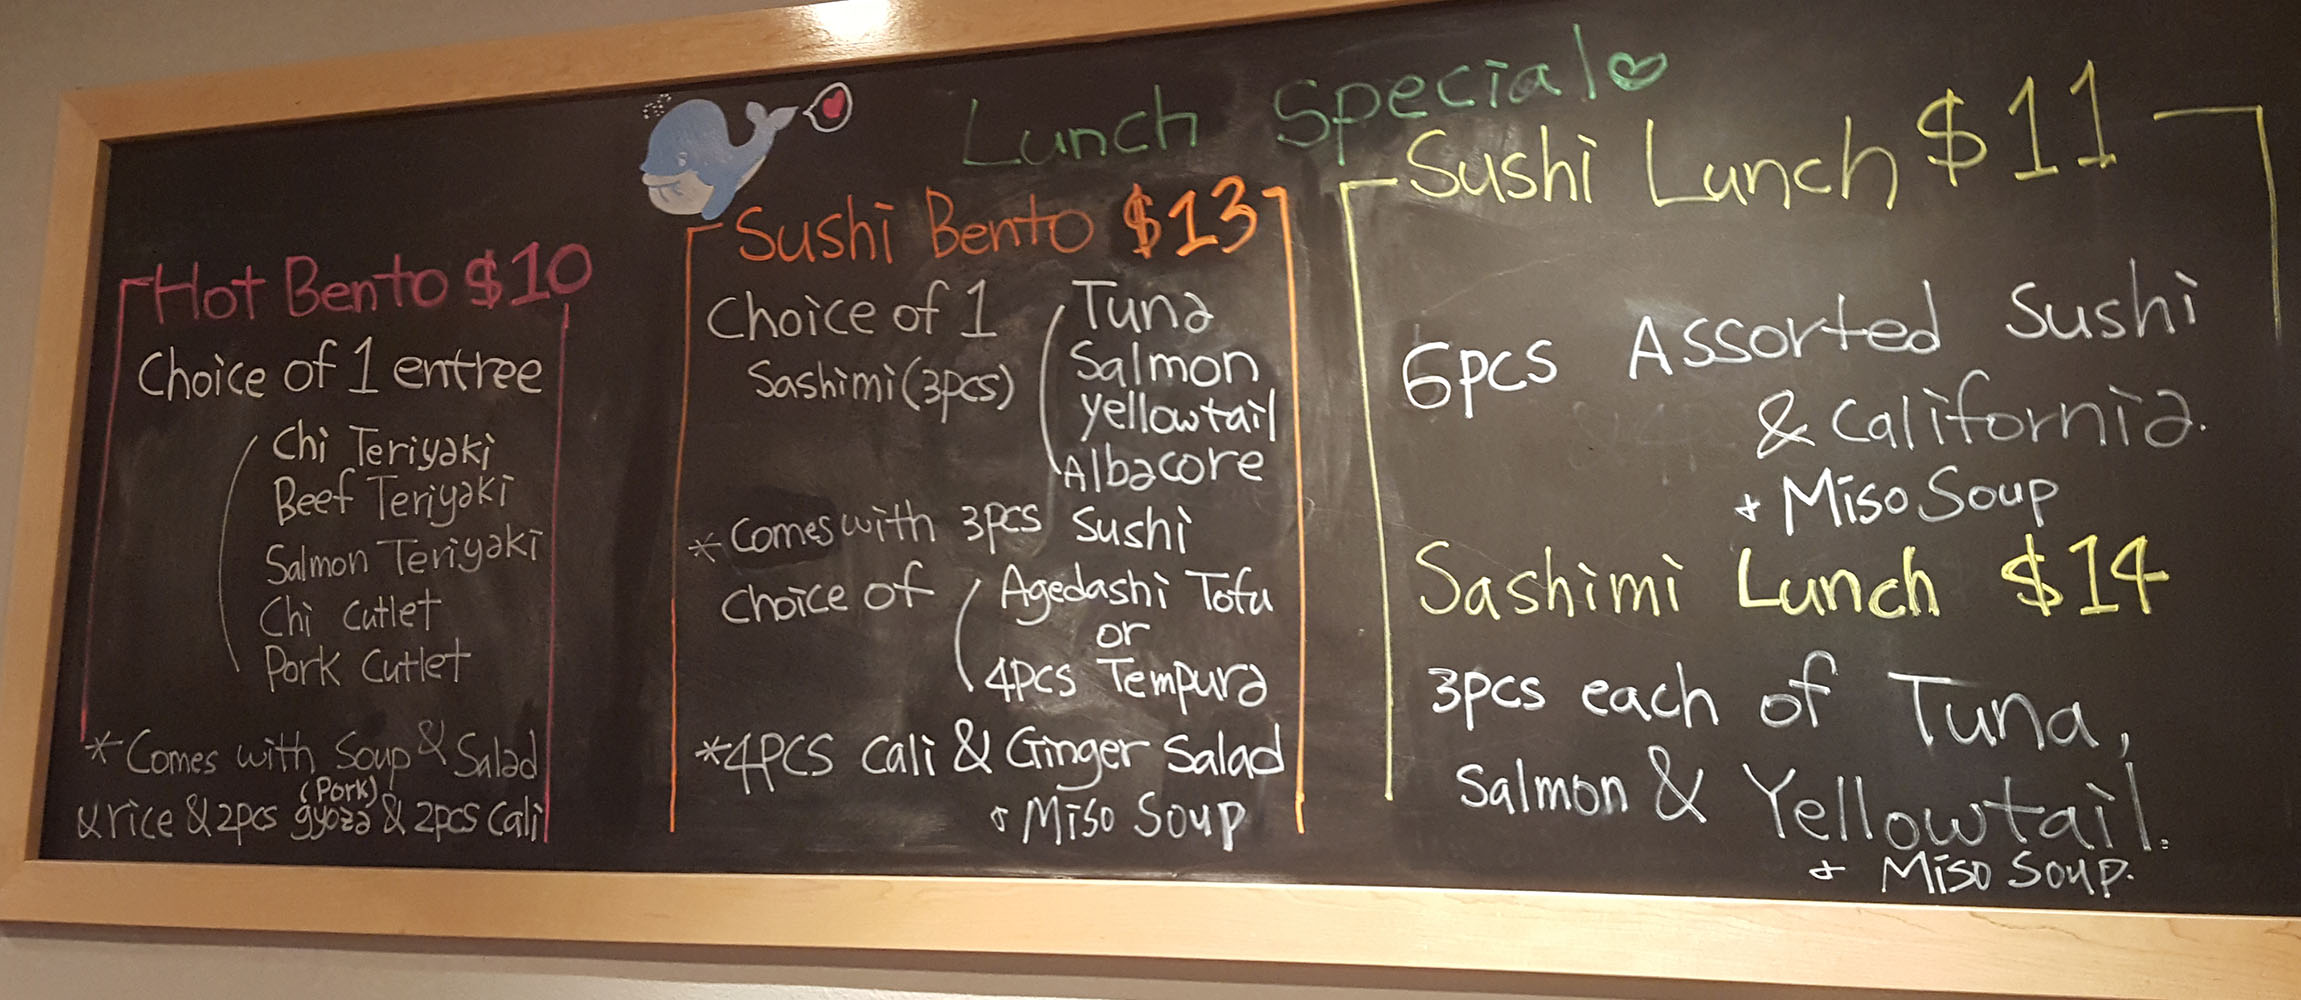 Lunch Specials, Hanabi Sushi & Rolls, West Sahara Las Vegas